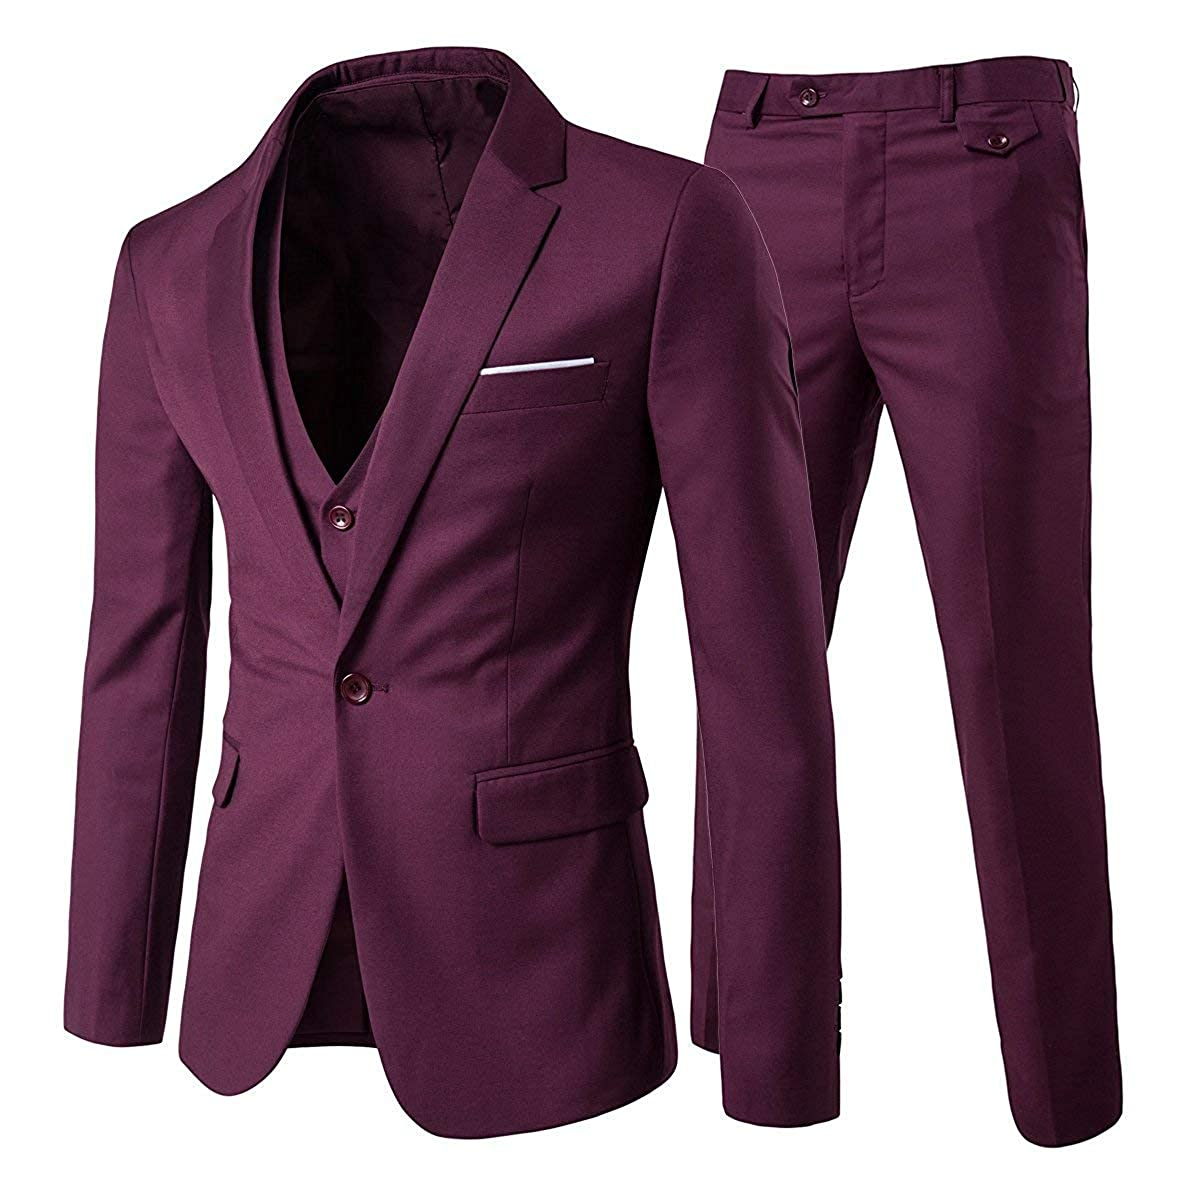 Cloudstyle Mens Slim Fit Business Suit 3 Piece One Button Wedding Formal Wear